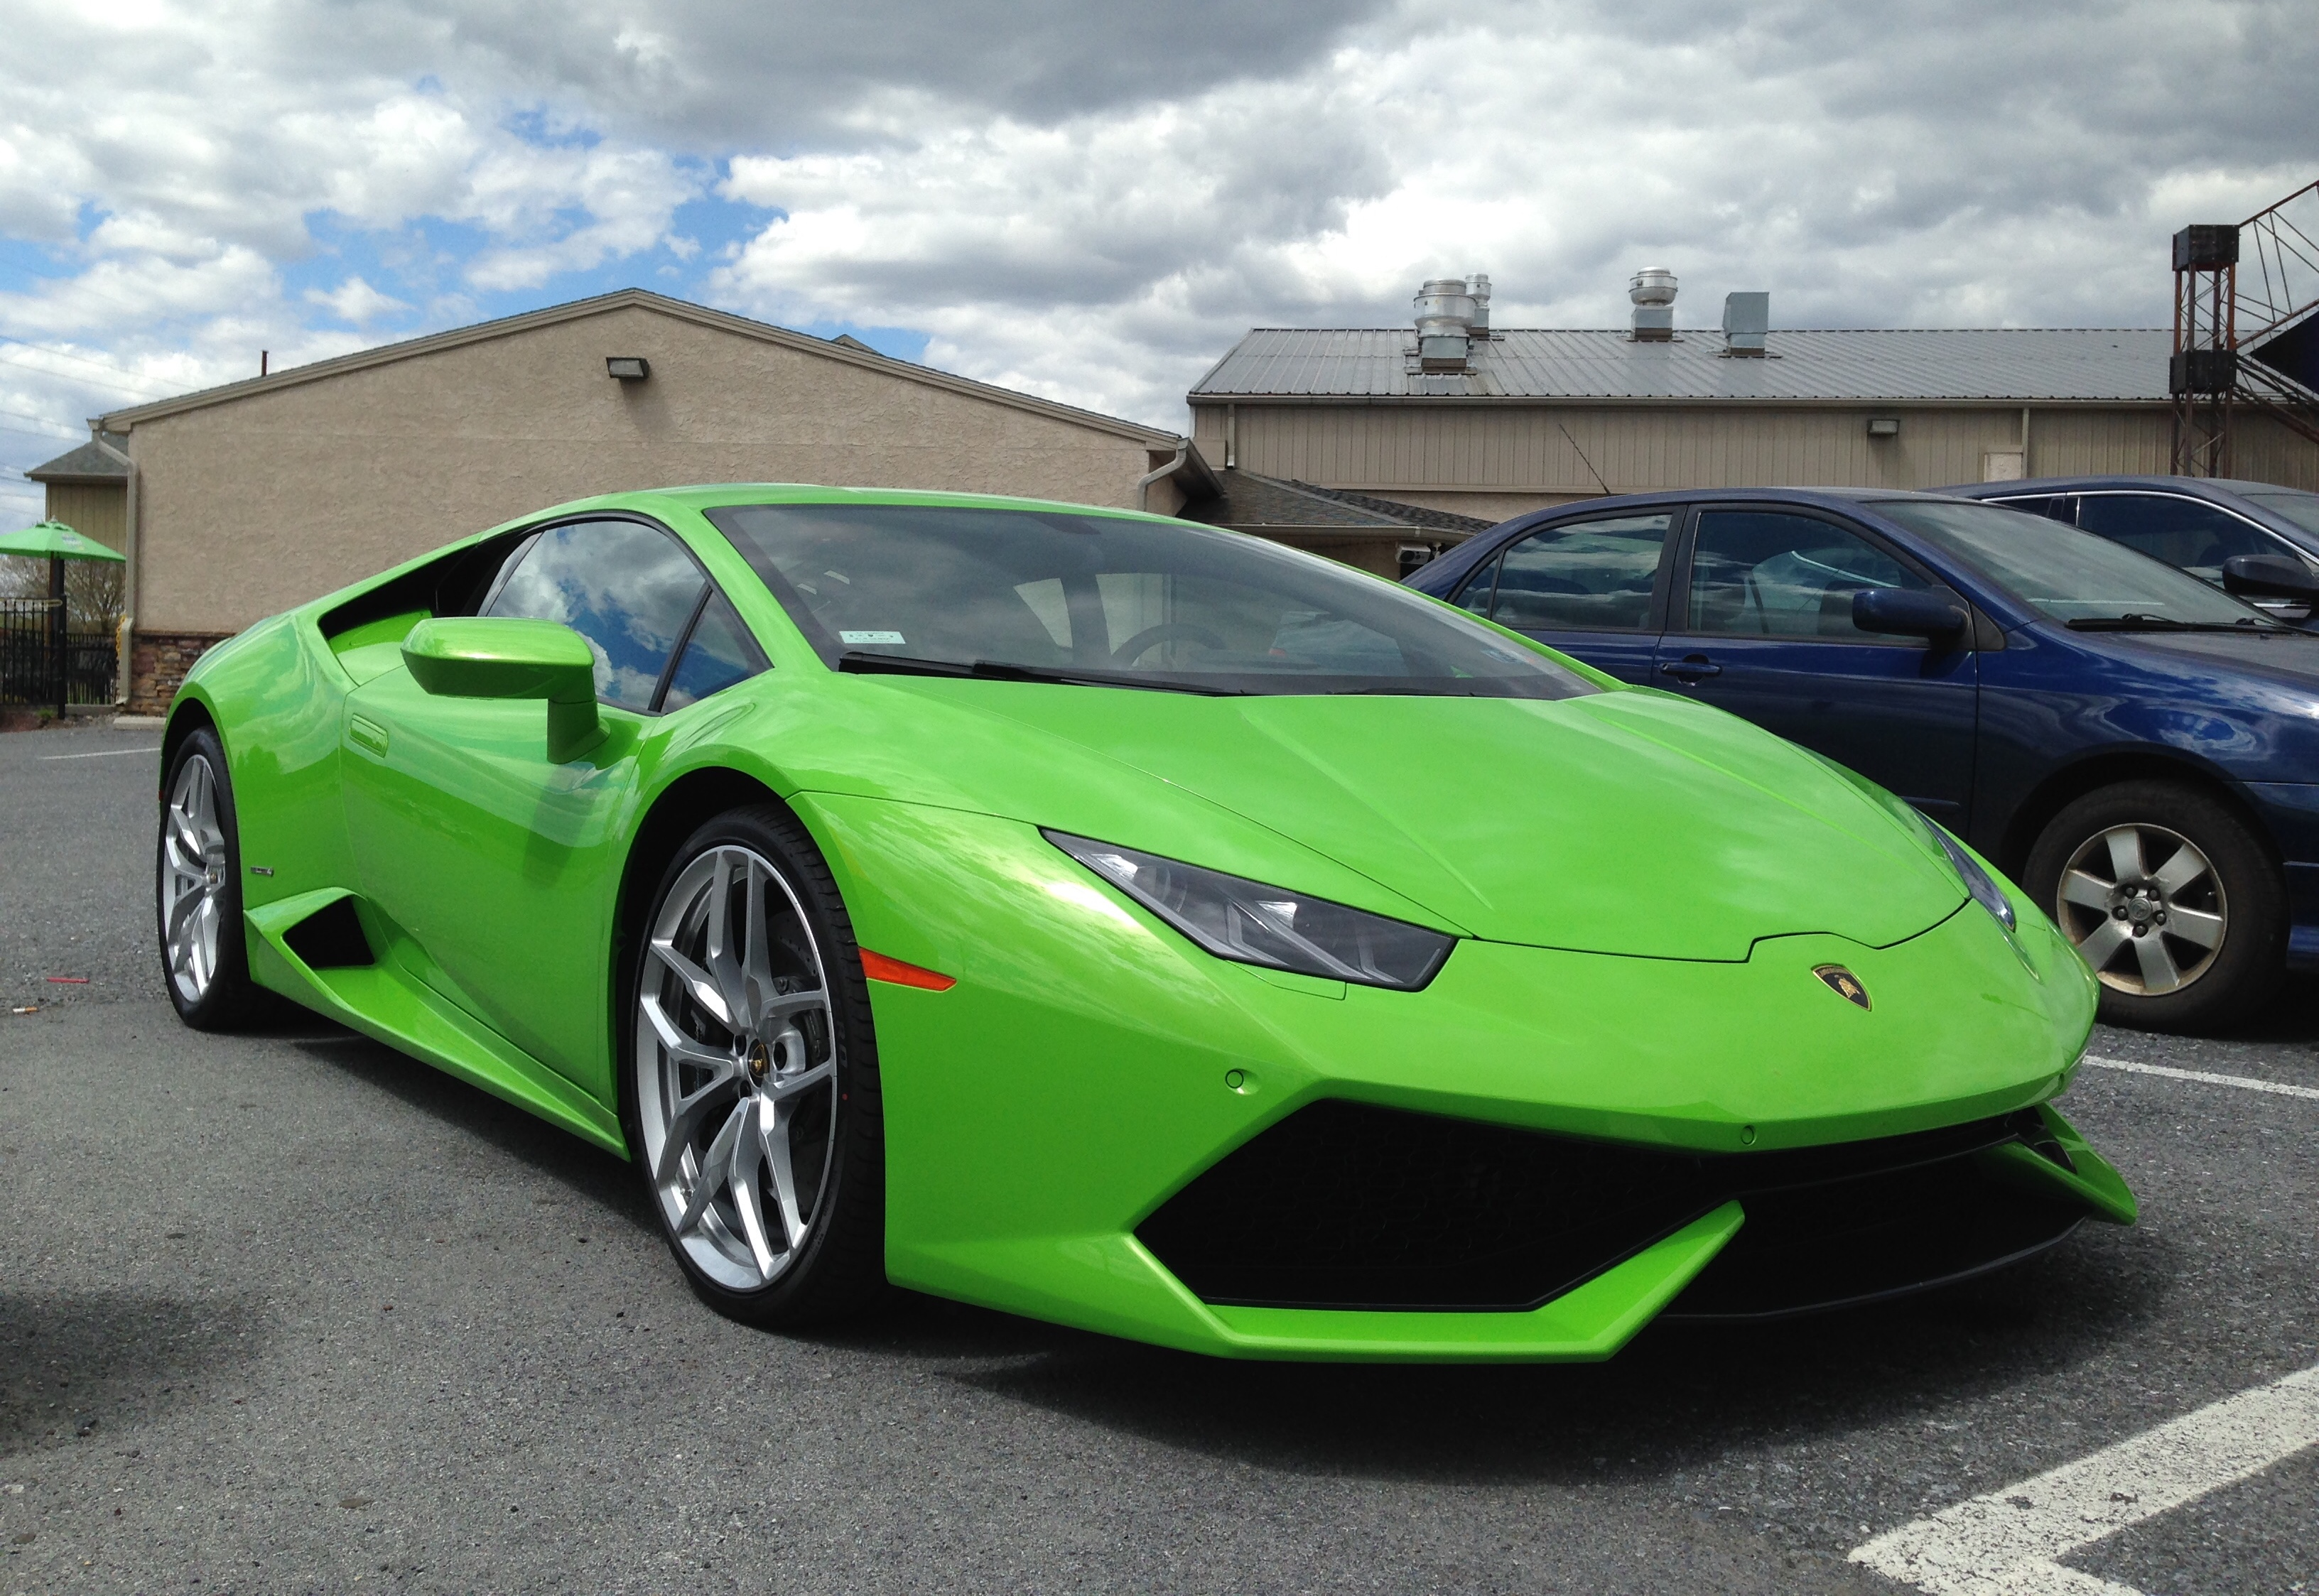 Lamborghini_Huracan_LP610-4_%2816728125723%29 Fabulous Lamborghini Huracan Need for Speed 2015 Cars Trend